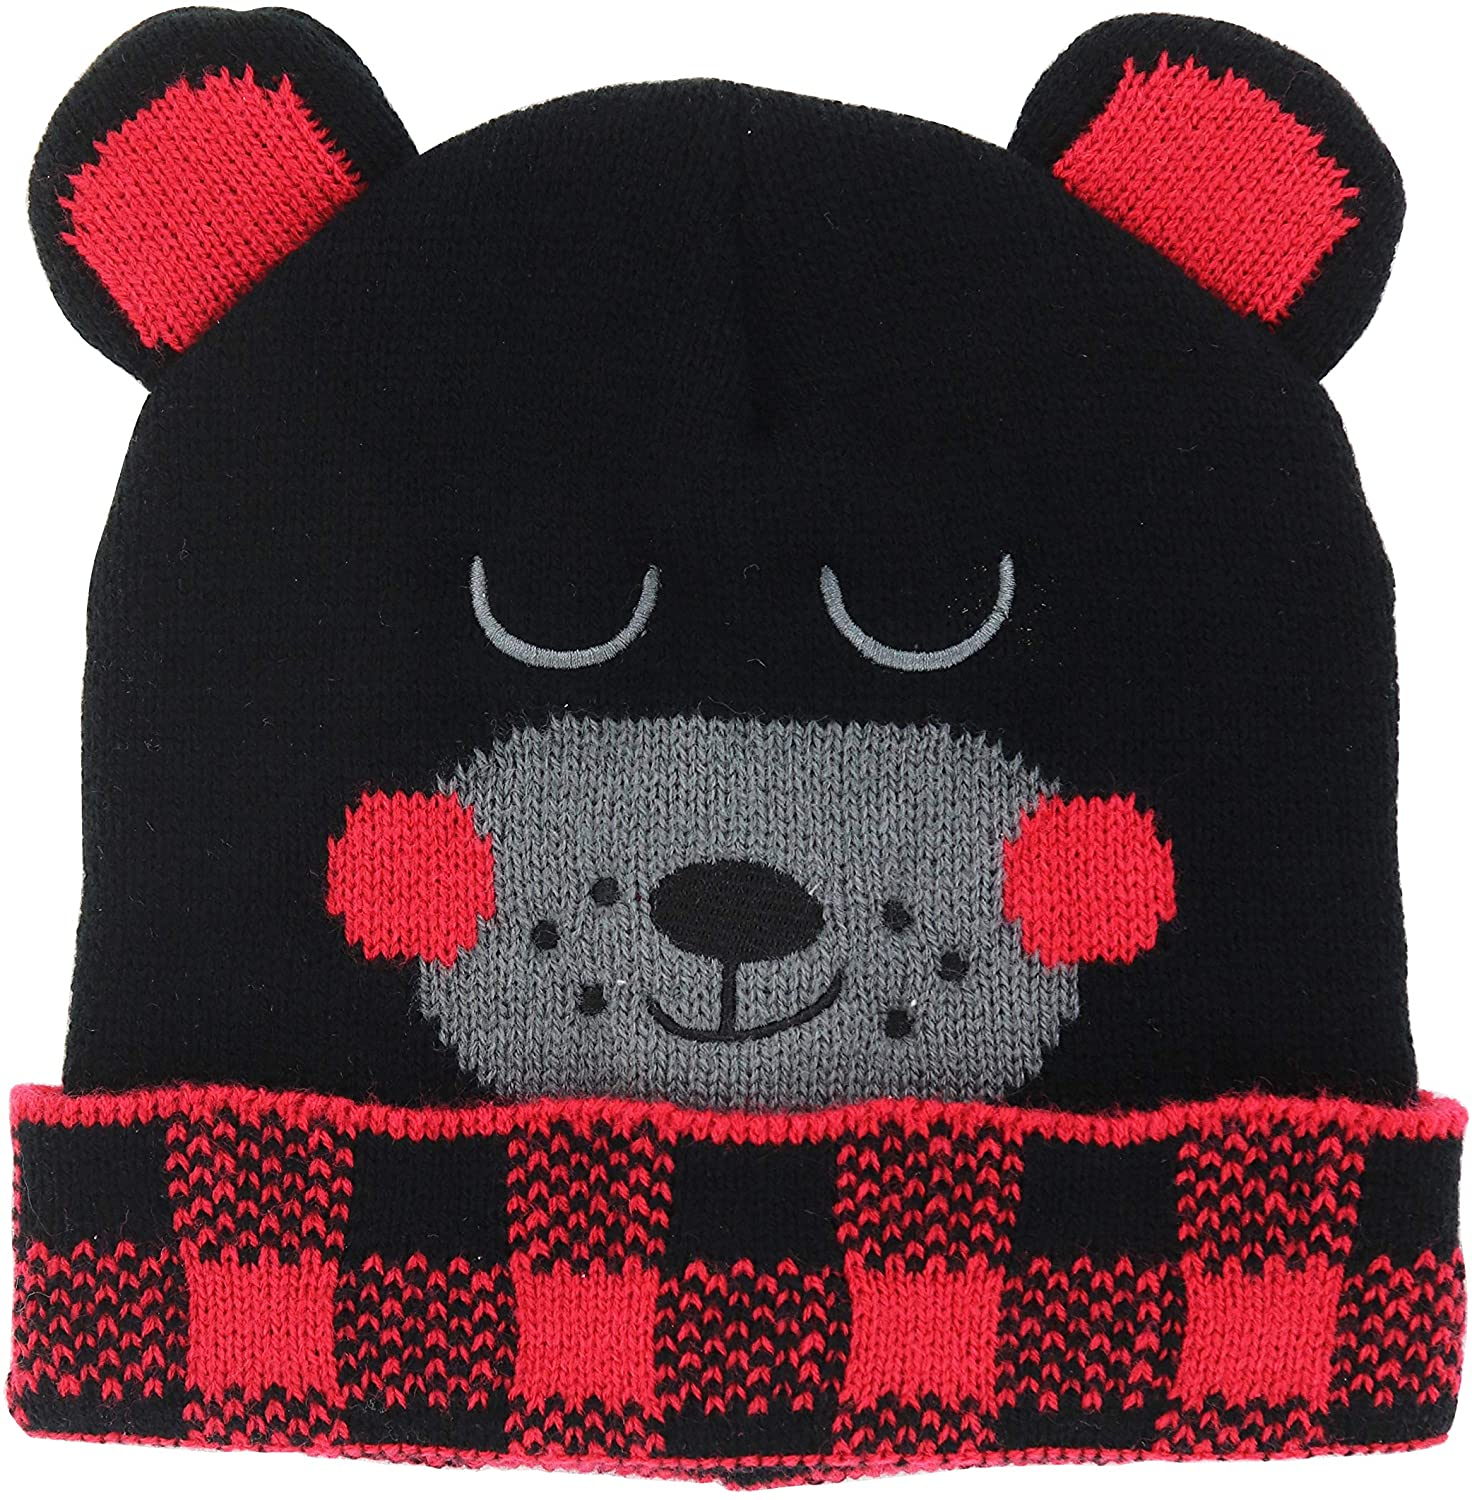 Go All Out Adult Llama Embroidered Knit Beanie Pom Cap